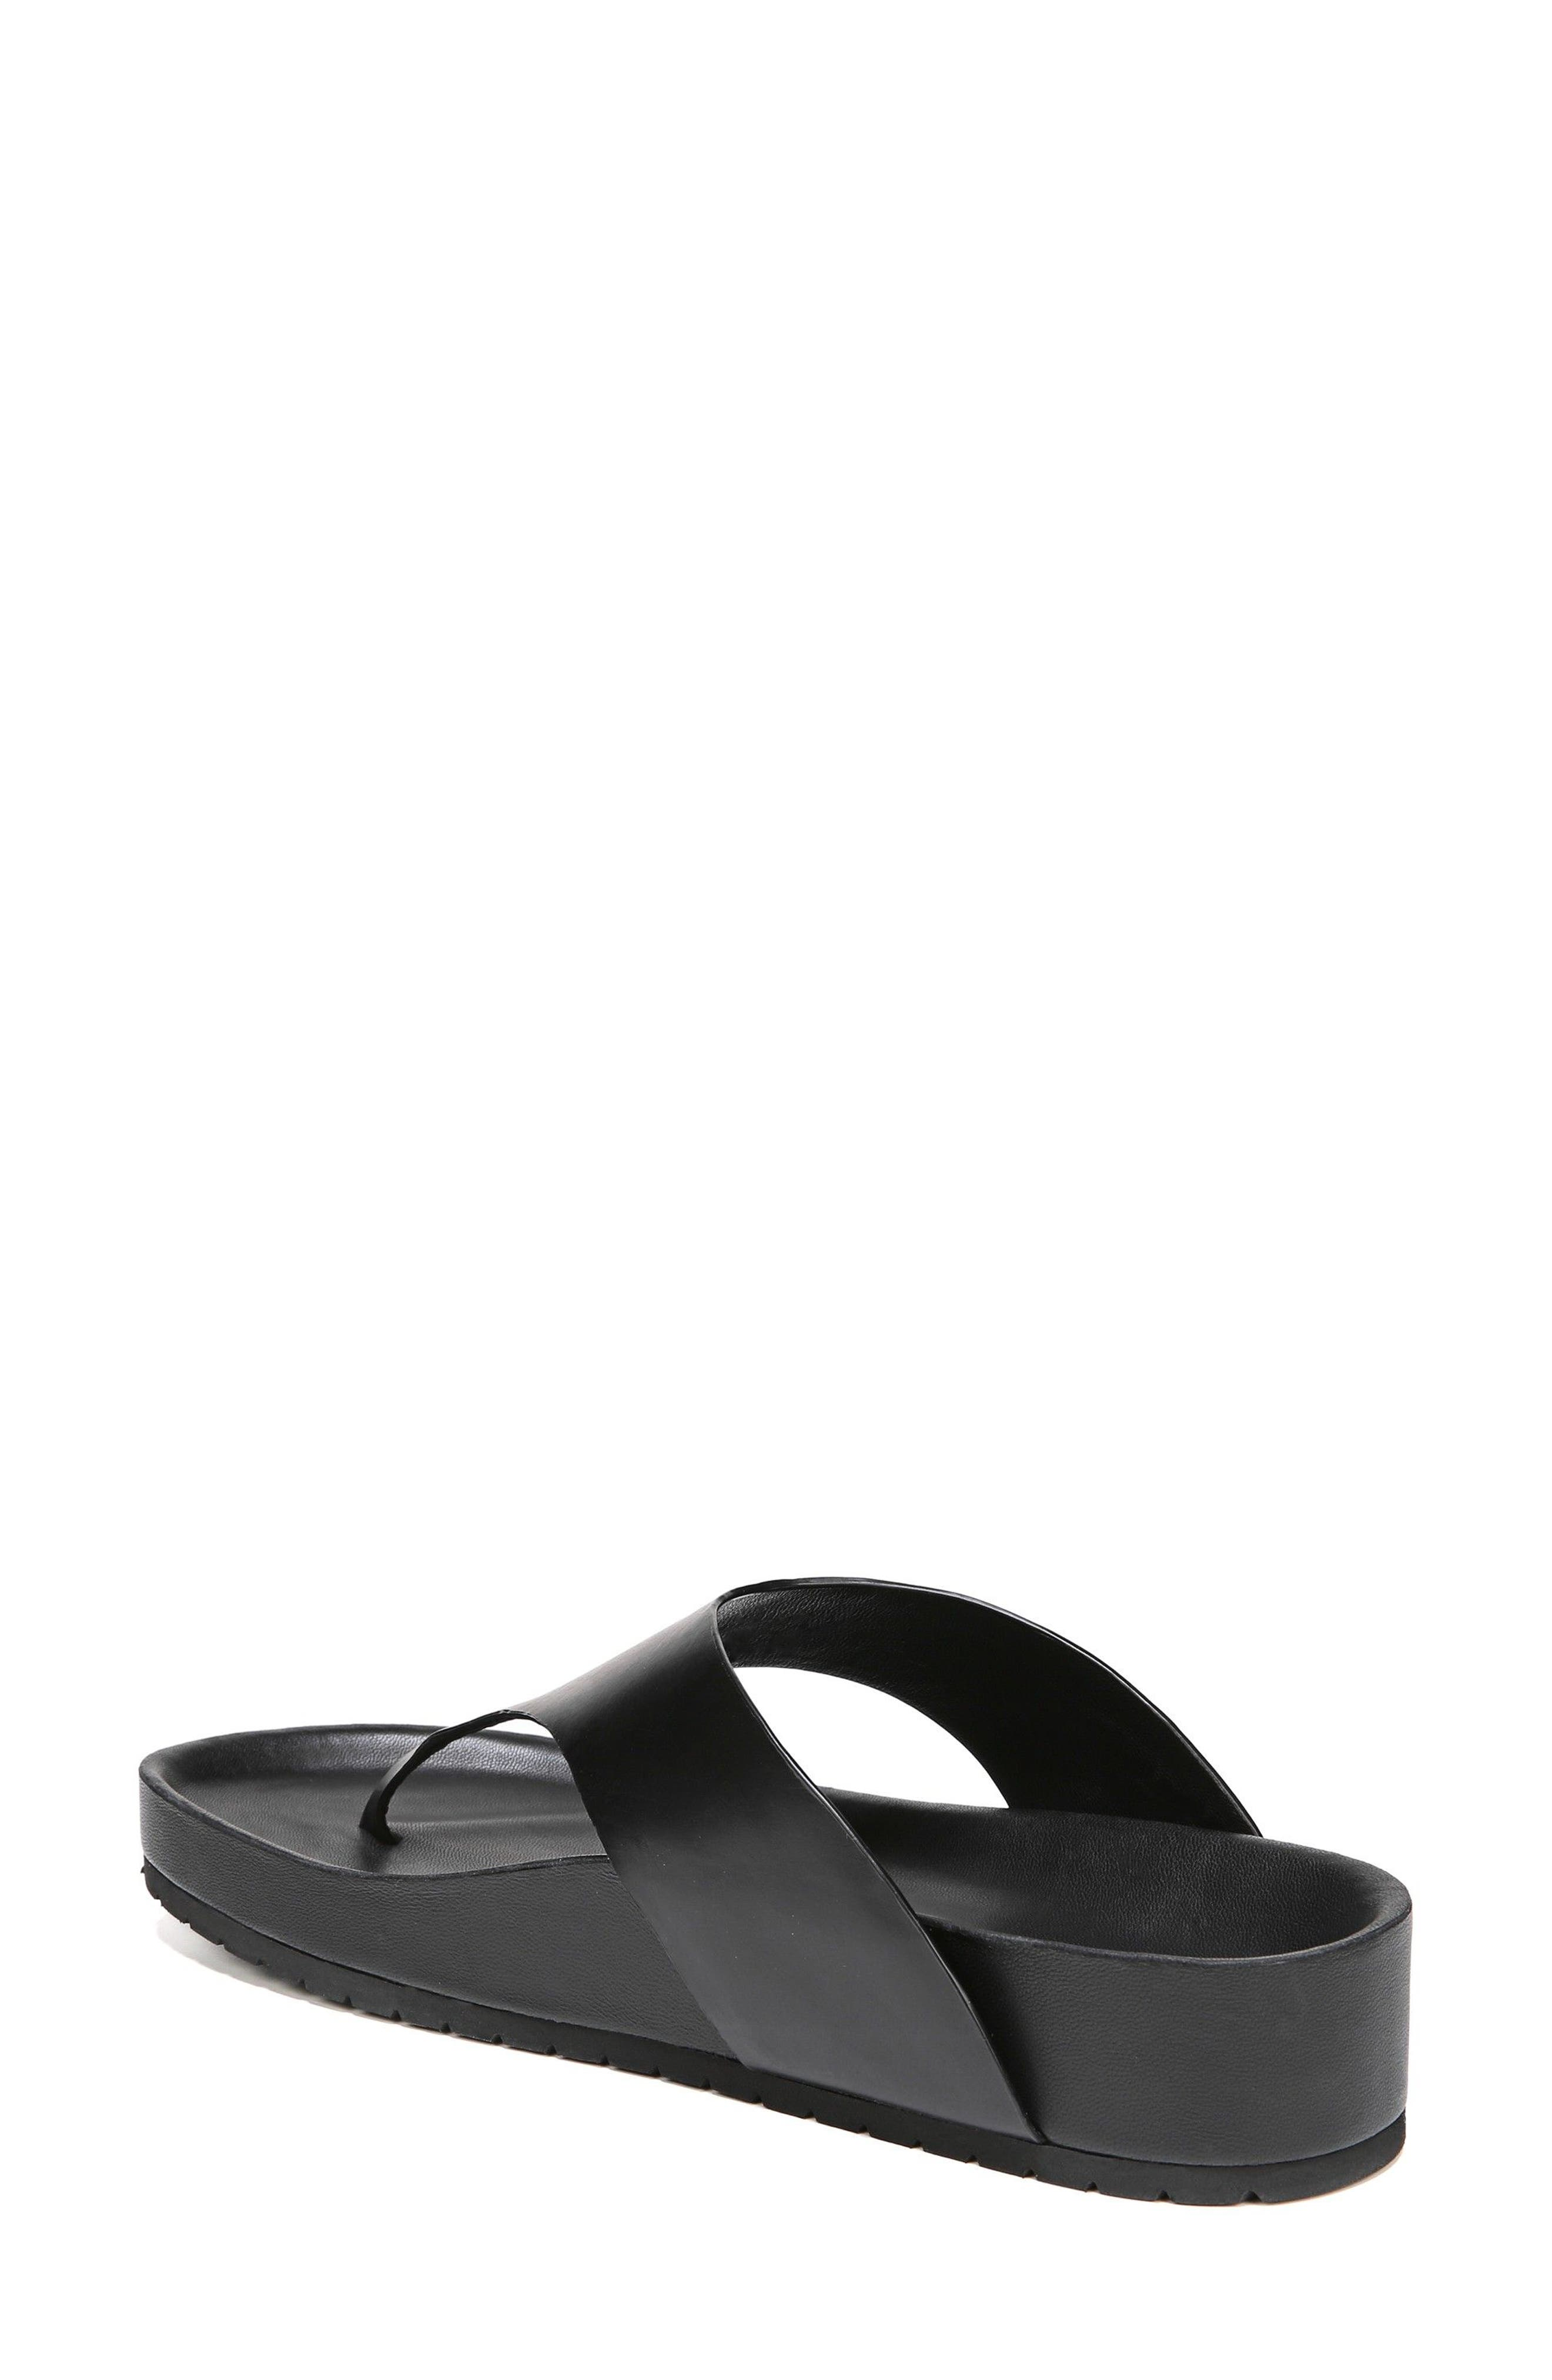 Padma Platform Sandal,                             Alternate thumbnail 2, color,                             BLACK